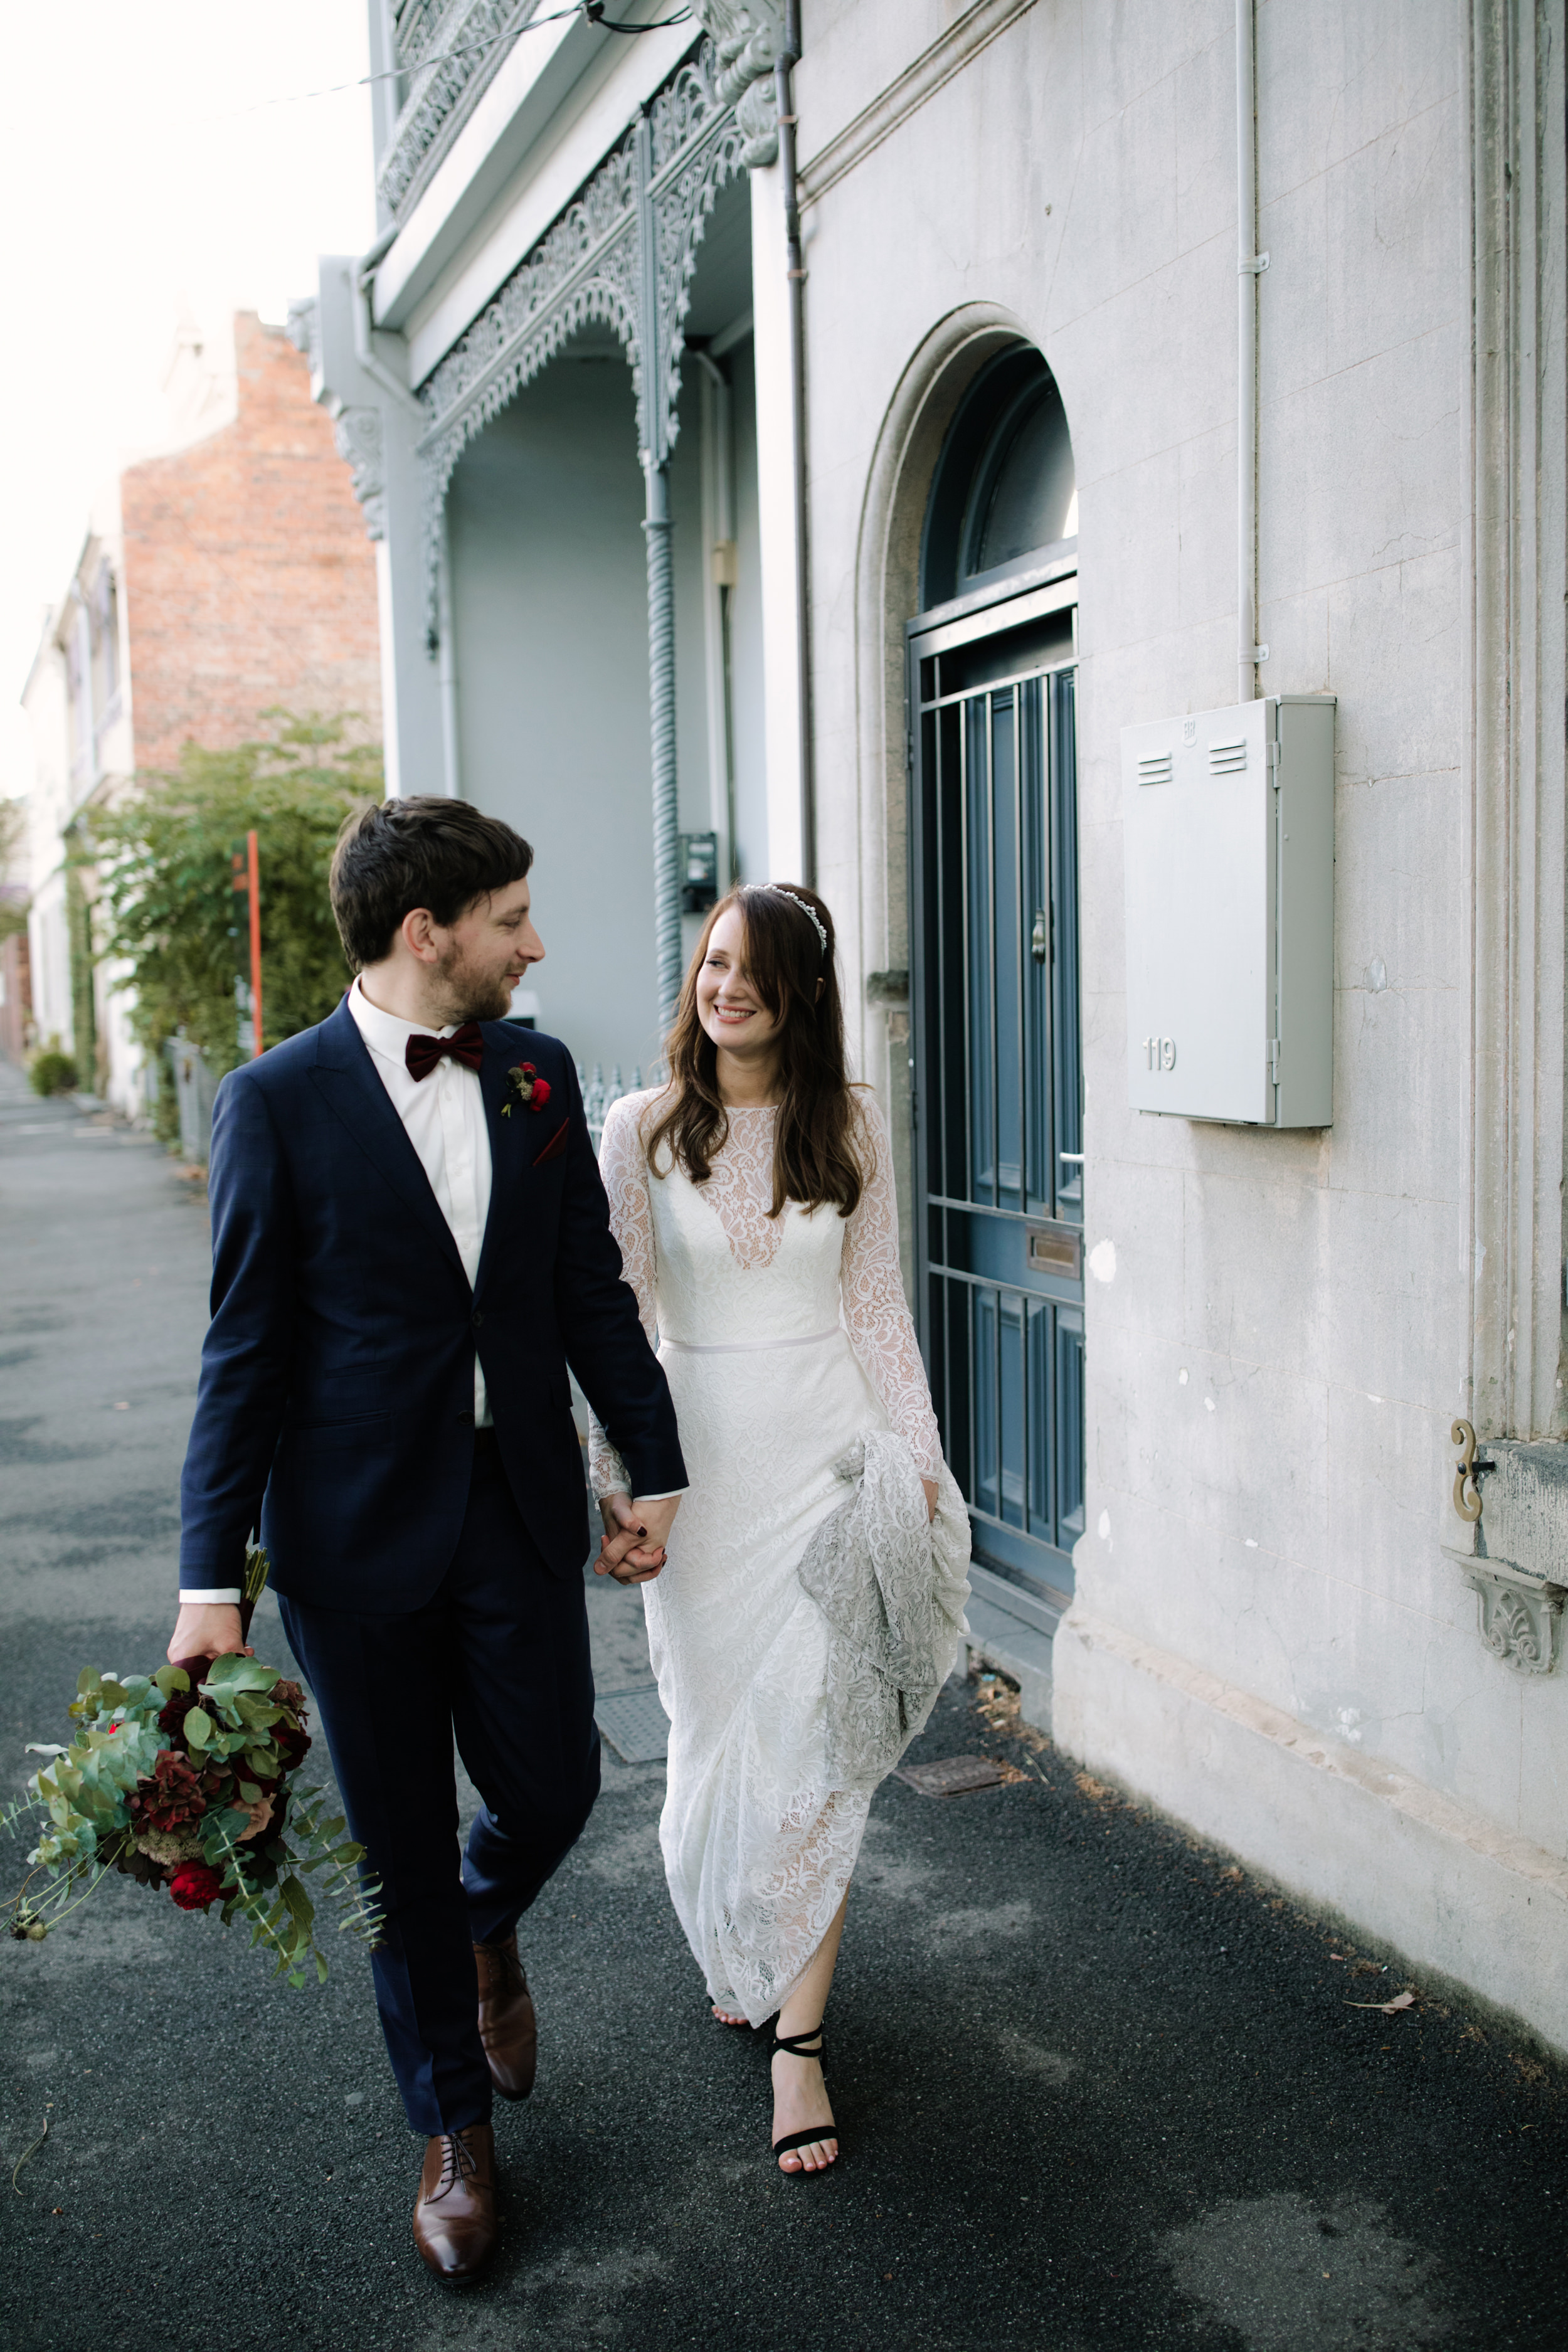 I_Got_You_Babe_Weddings_Emily_Matt_Rupert_Glasshaus_Melbourne0165.JPG